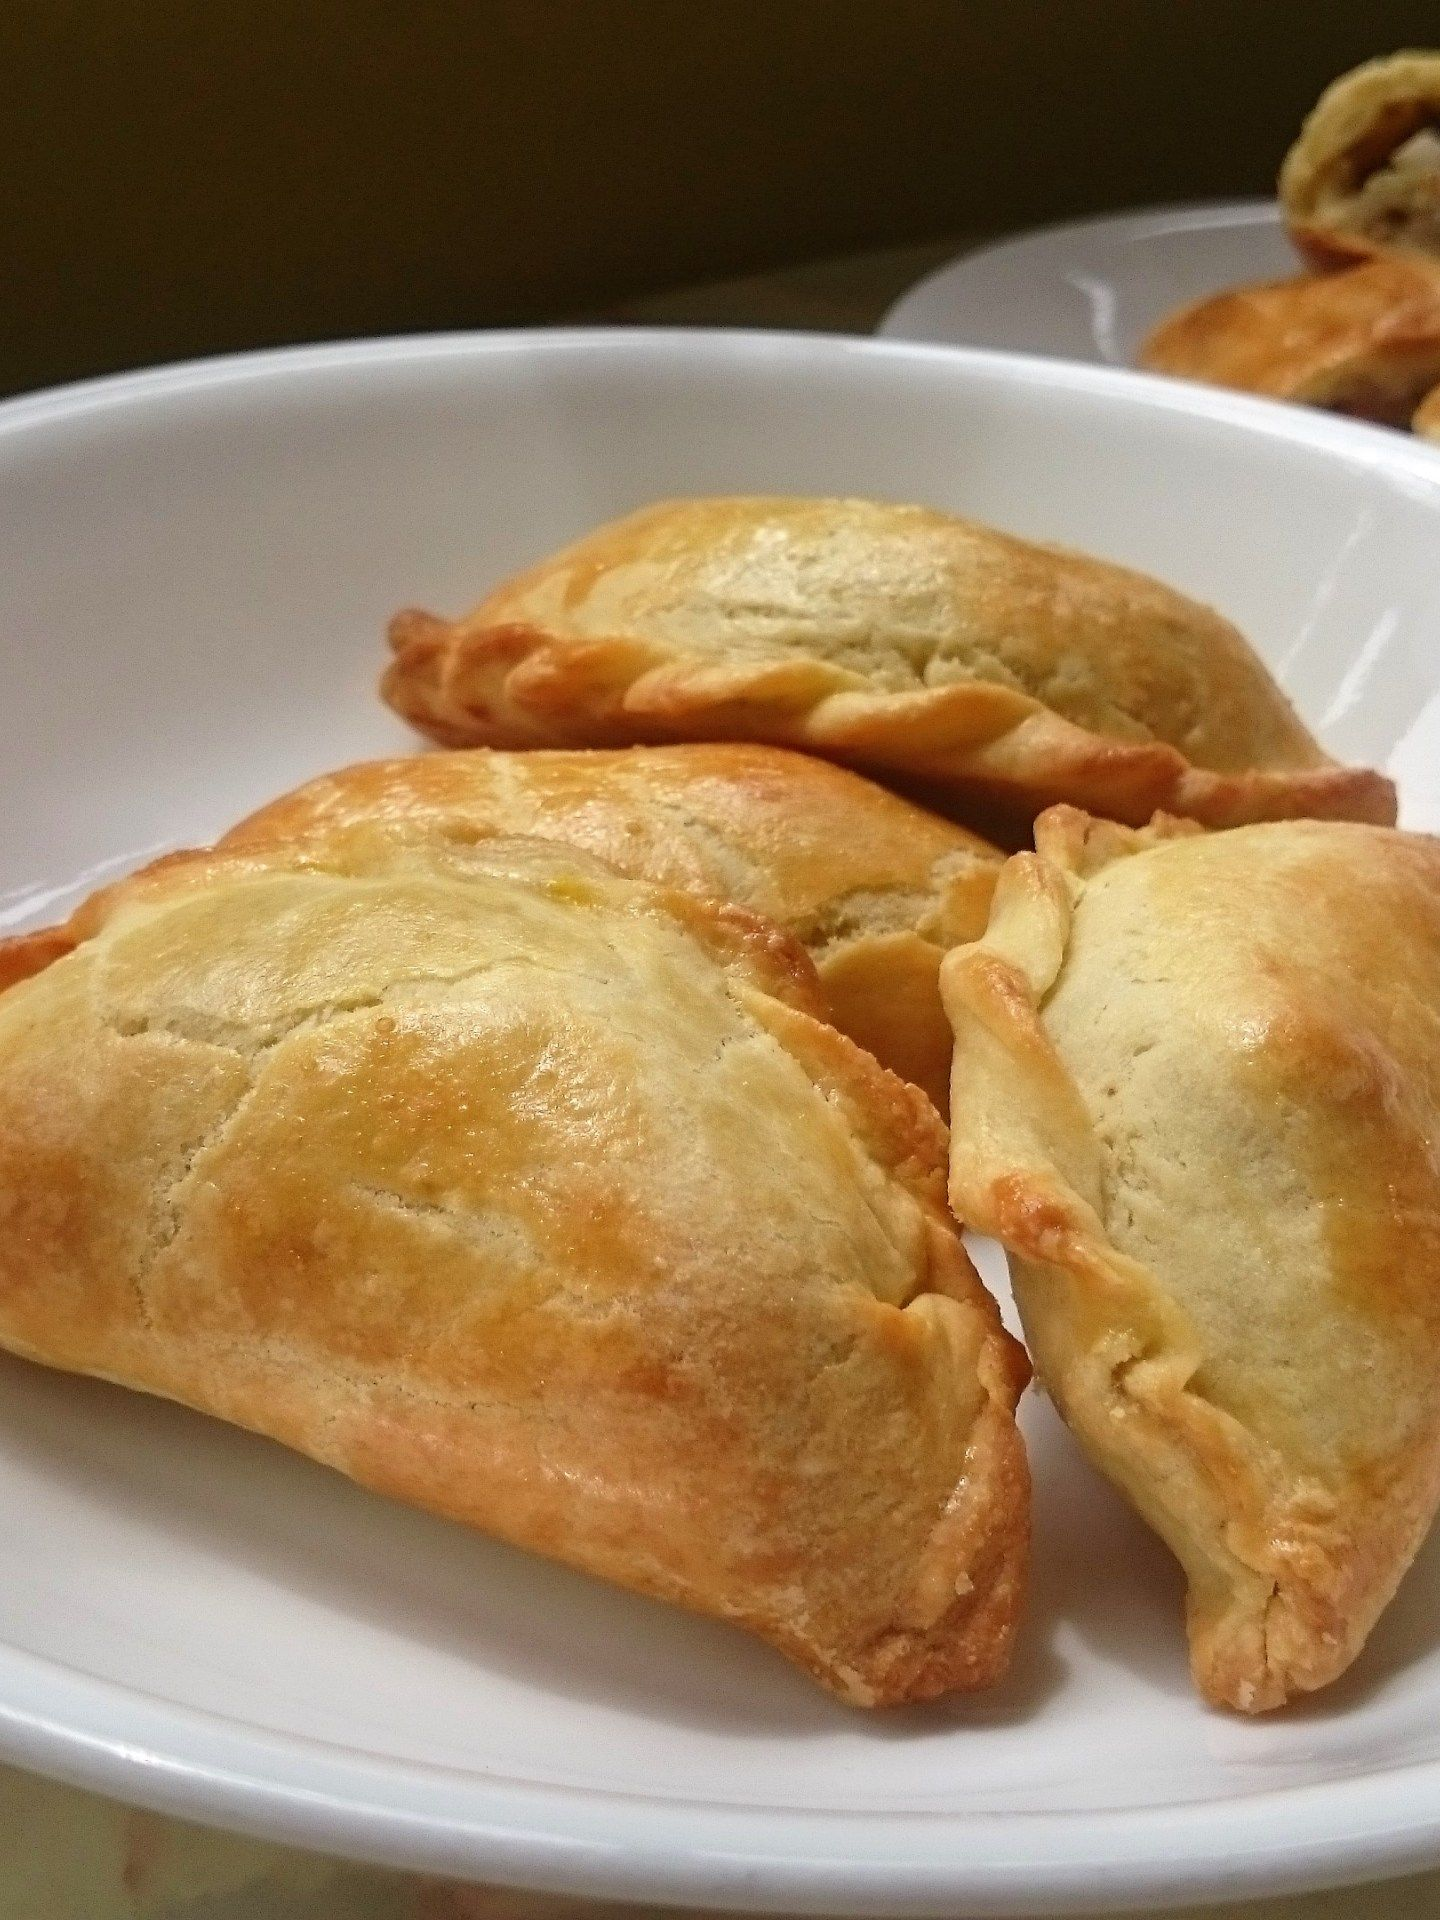 Beef Pasty Baked Pastry Puff Shiokman Recipes Recipe Pasties Recipes Recipes Puff Pastry Recipes